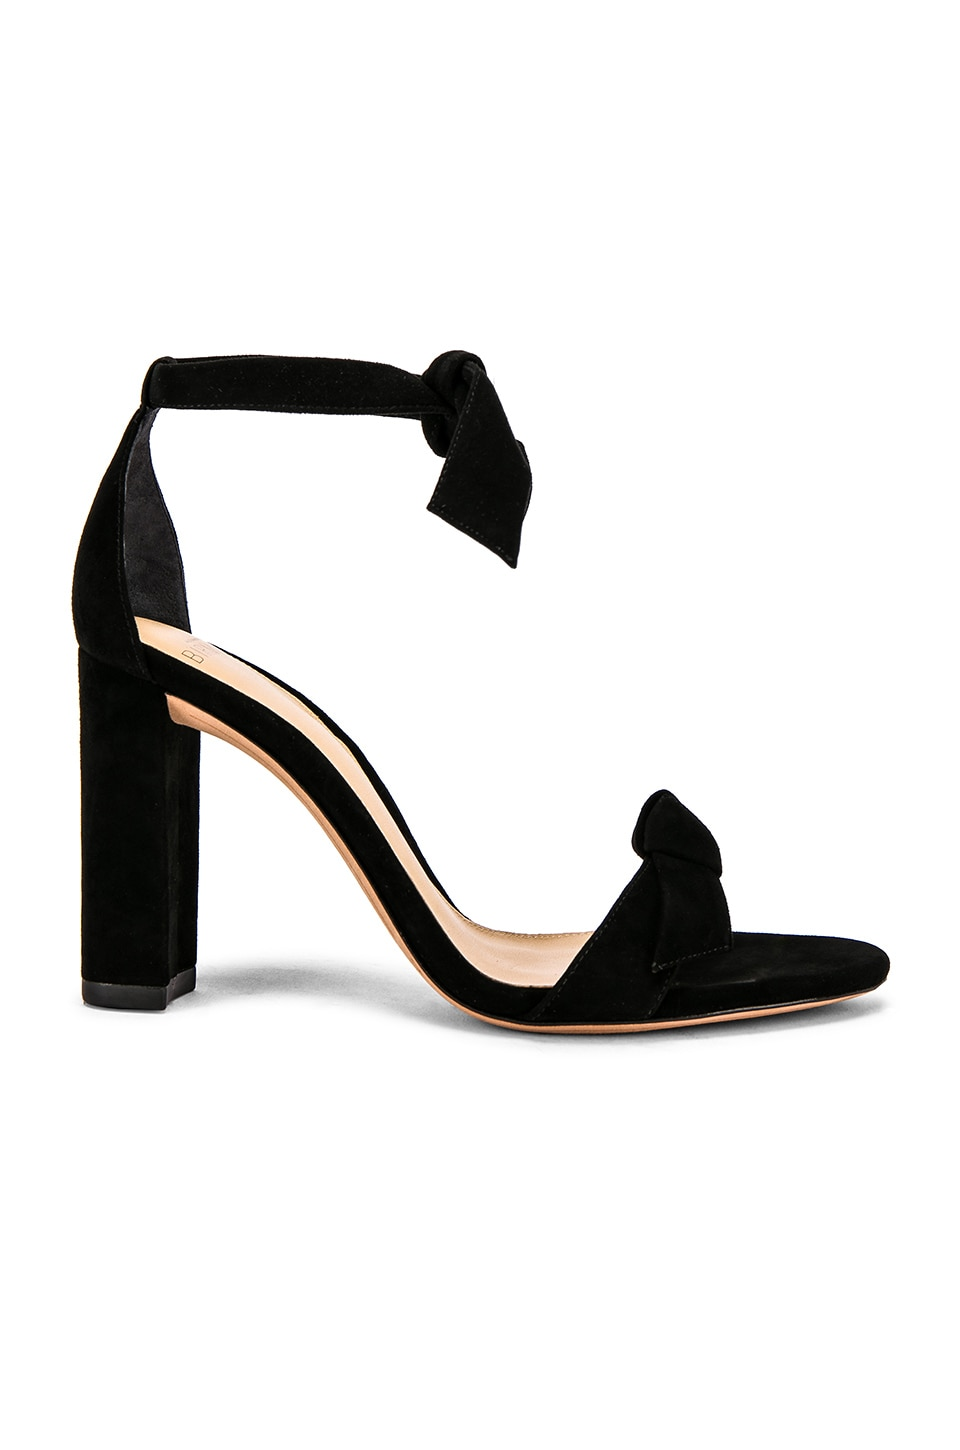 Alexandre Birman Clarita Block Sandal in Black